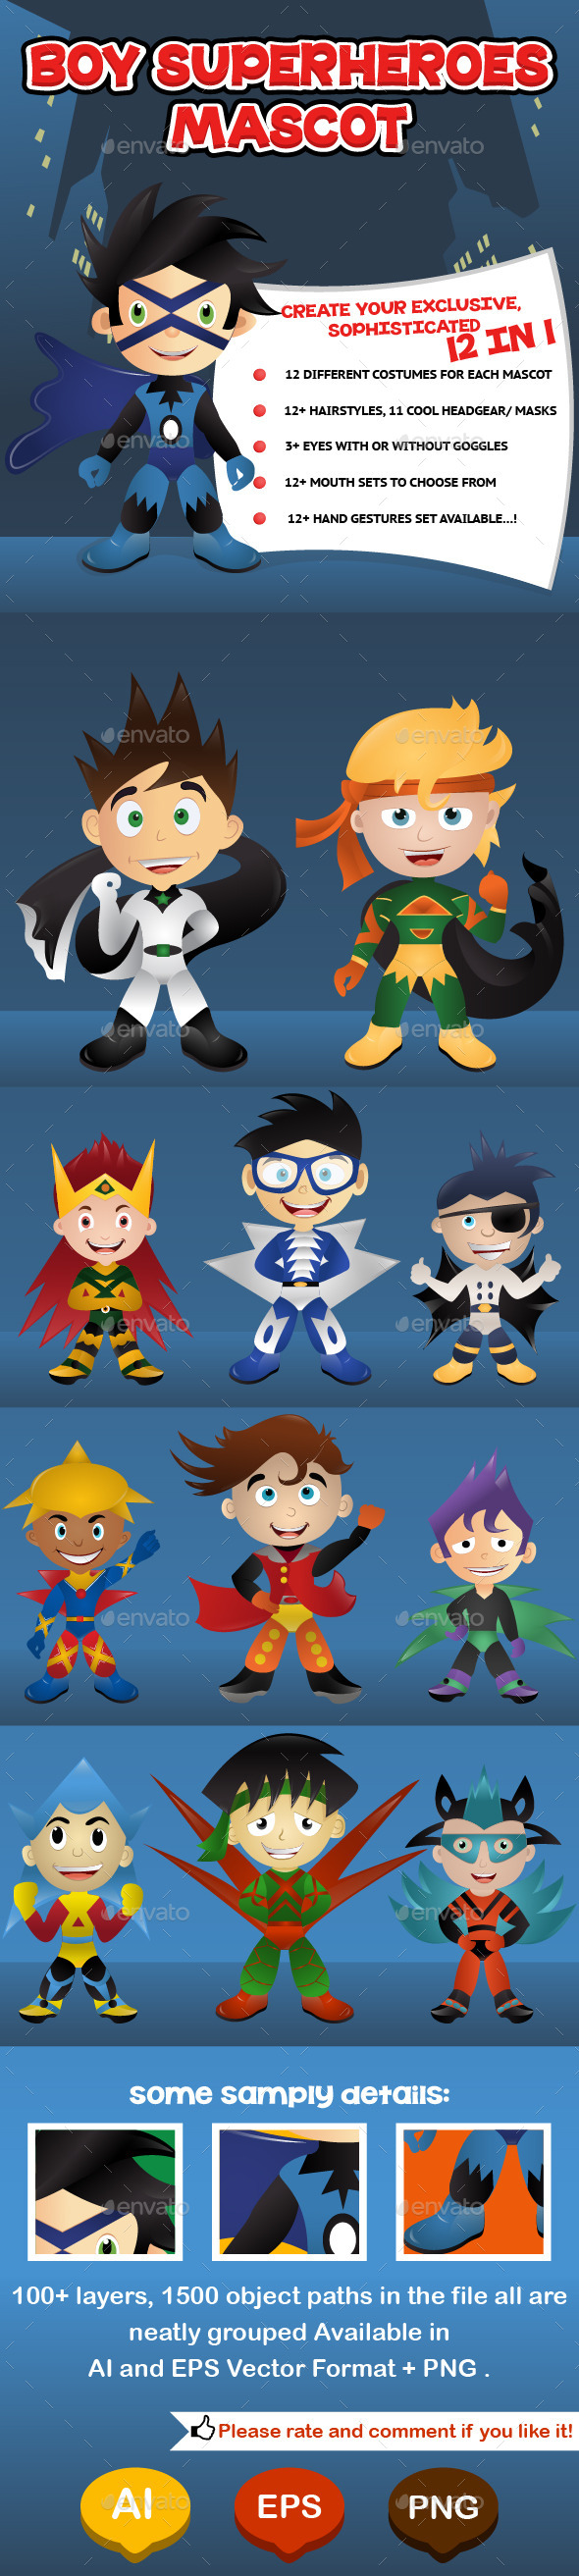 Boy Superheroes Mascot